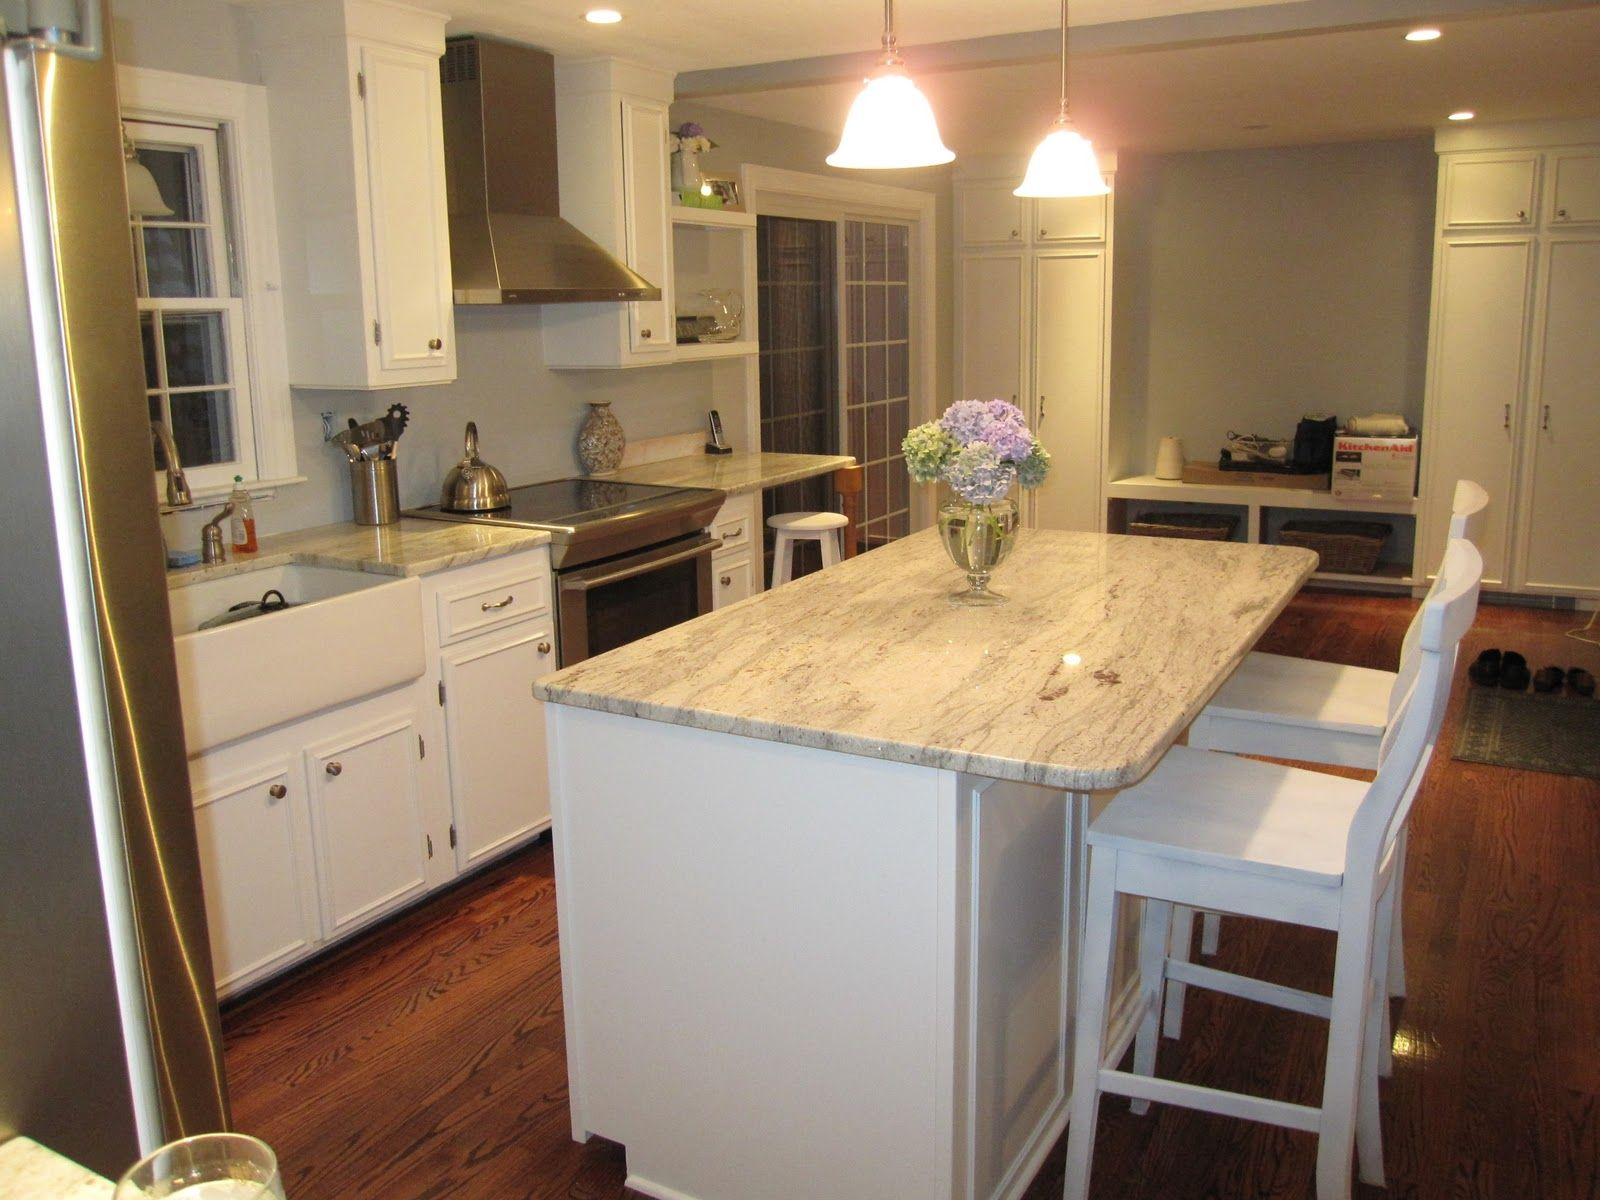 White cabinets with granite countertops diy kitchen Diy white cabinets